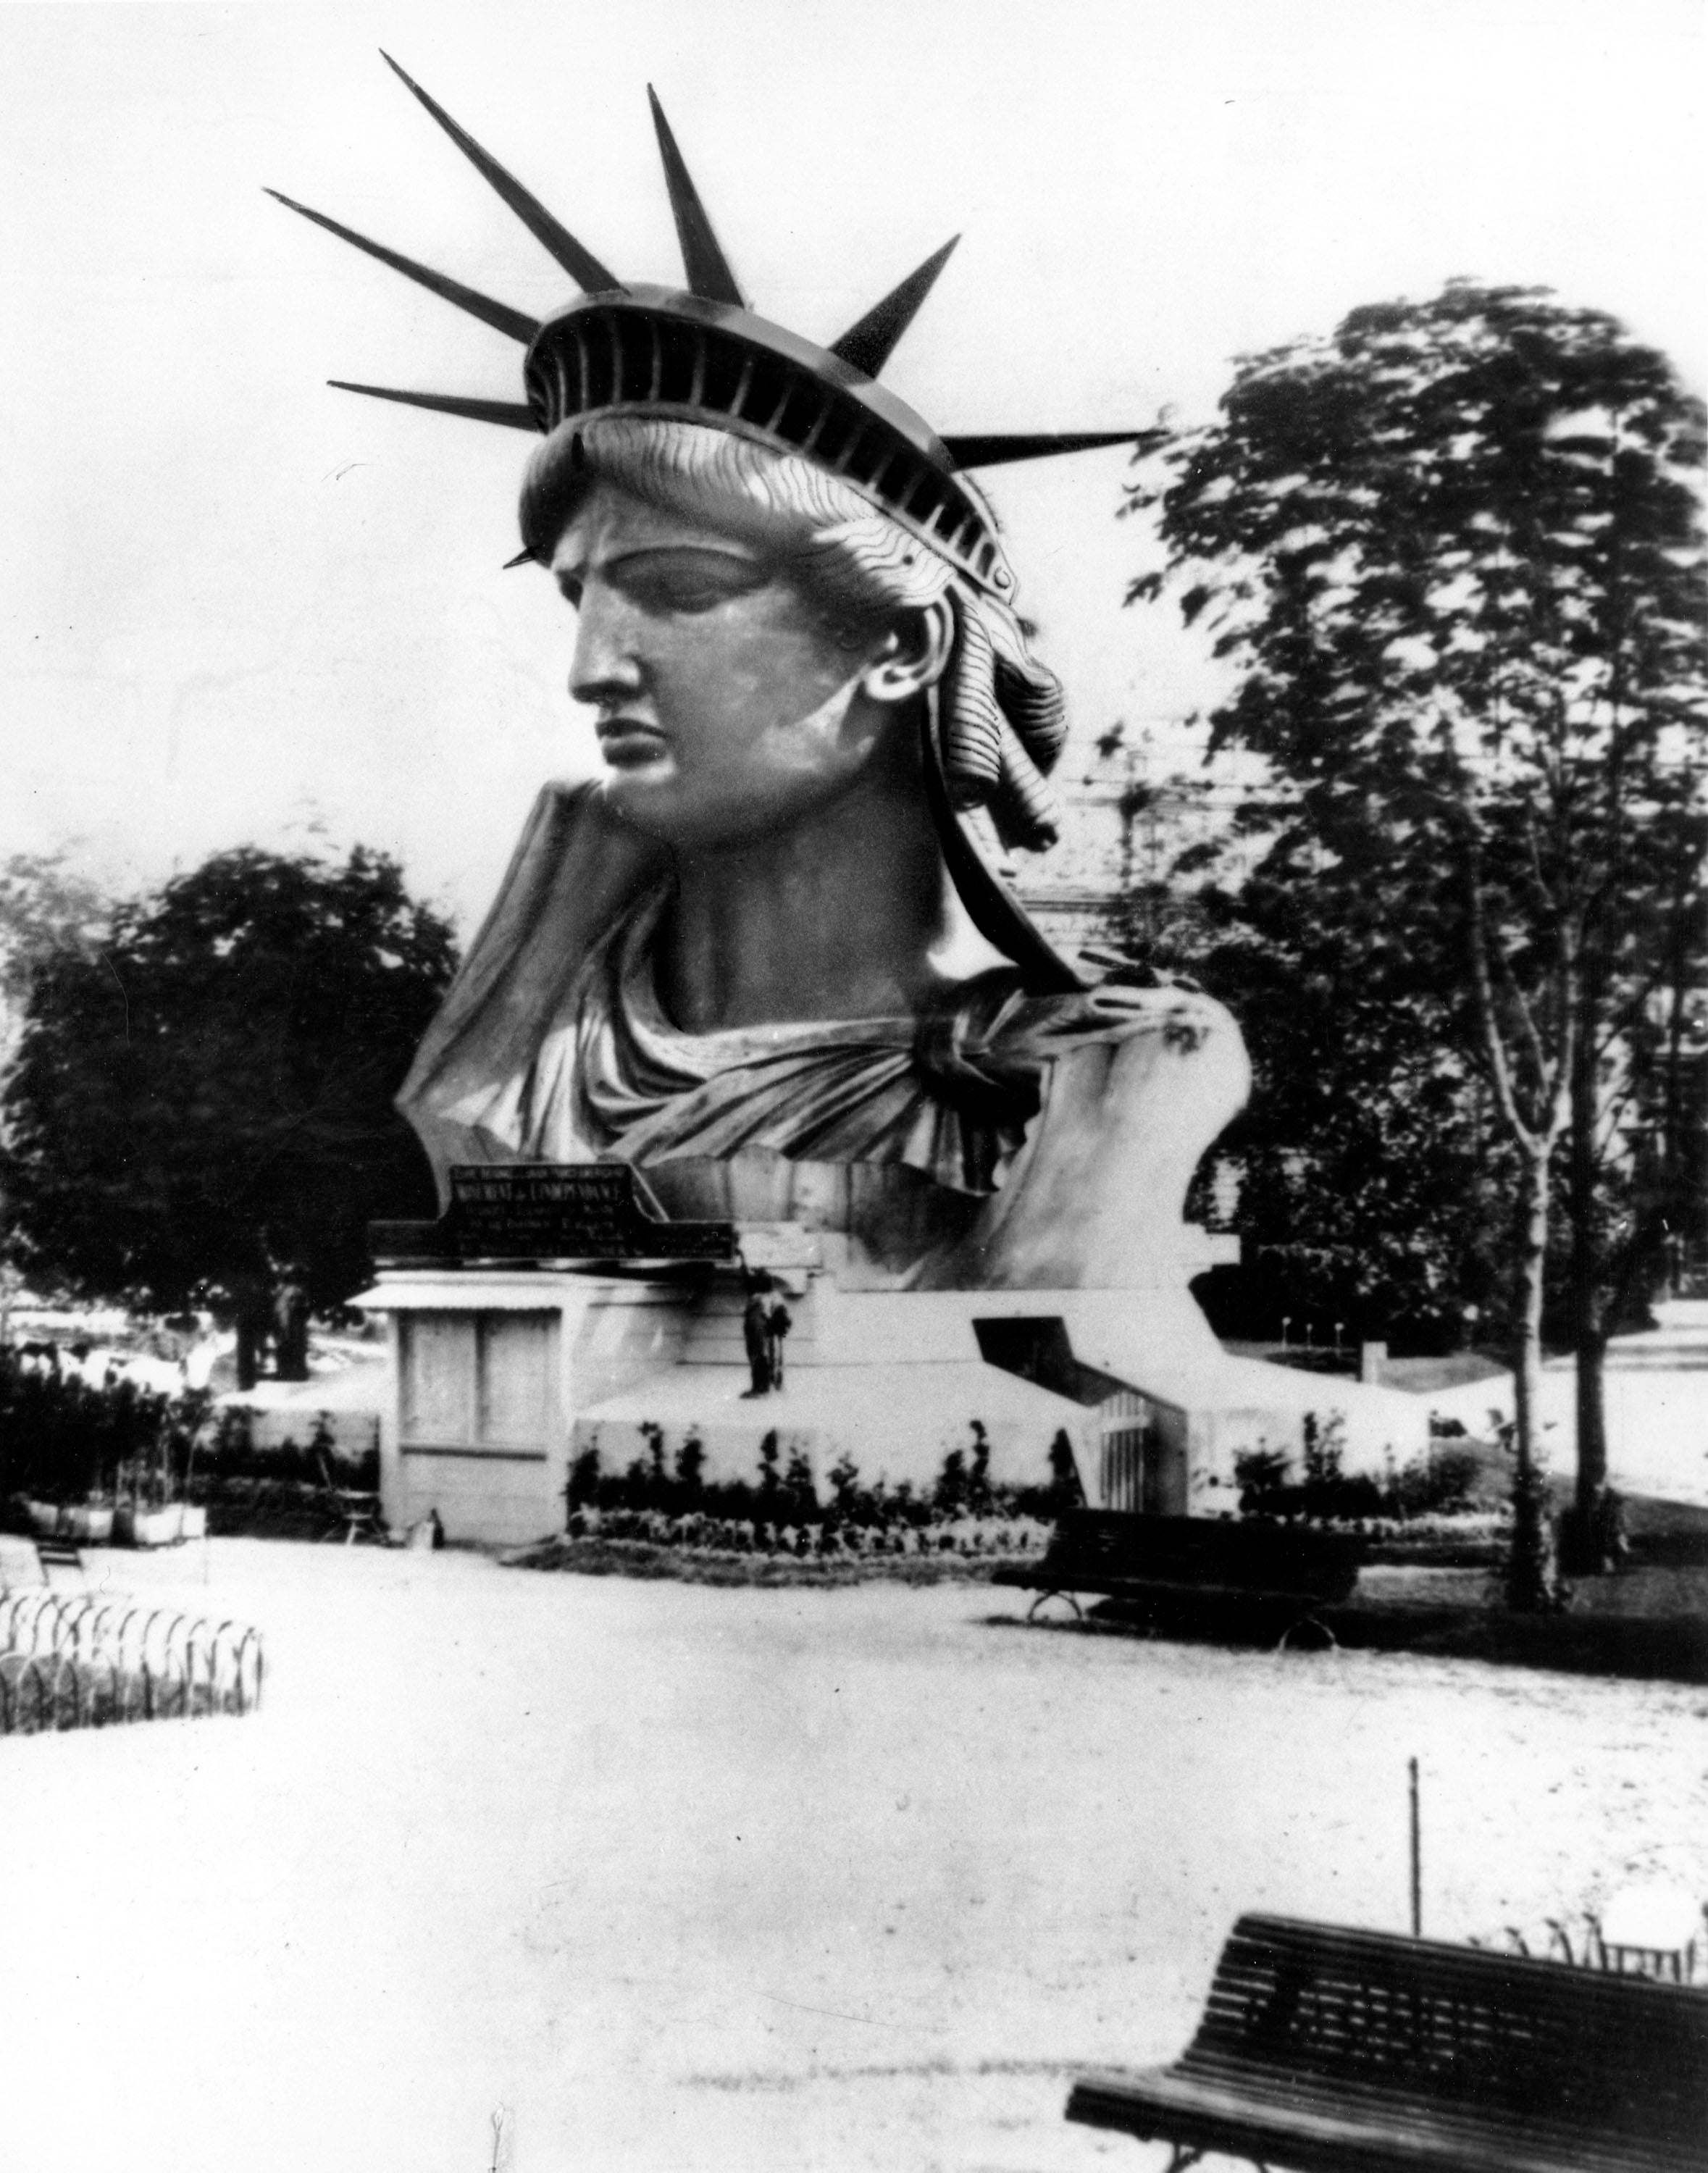 The Statue of Liberty Has Her Own Patent